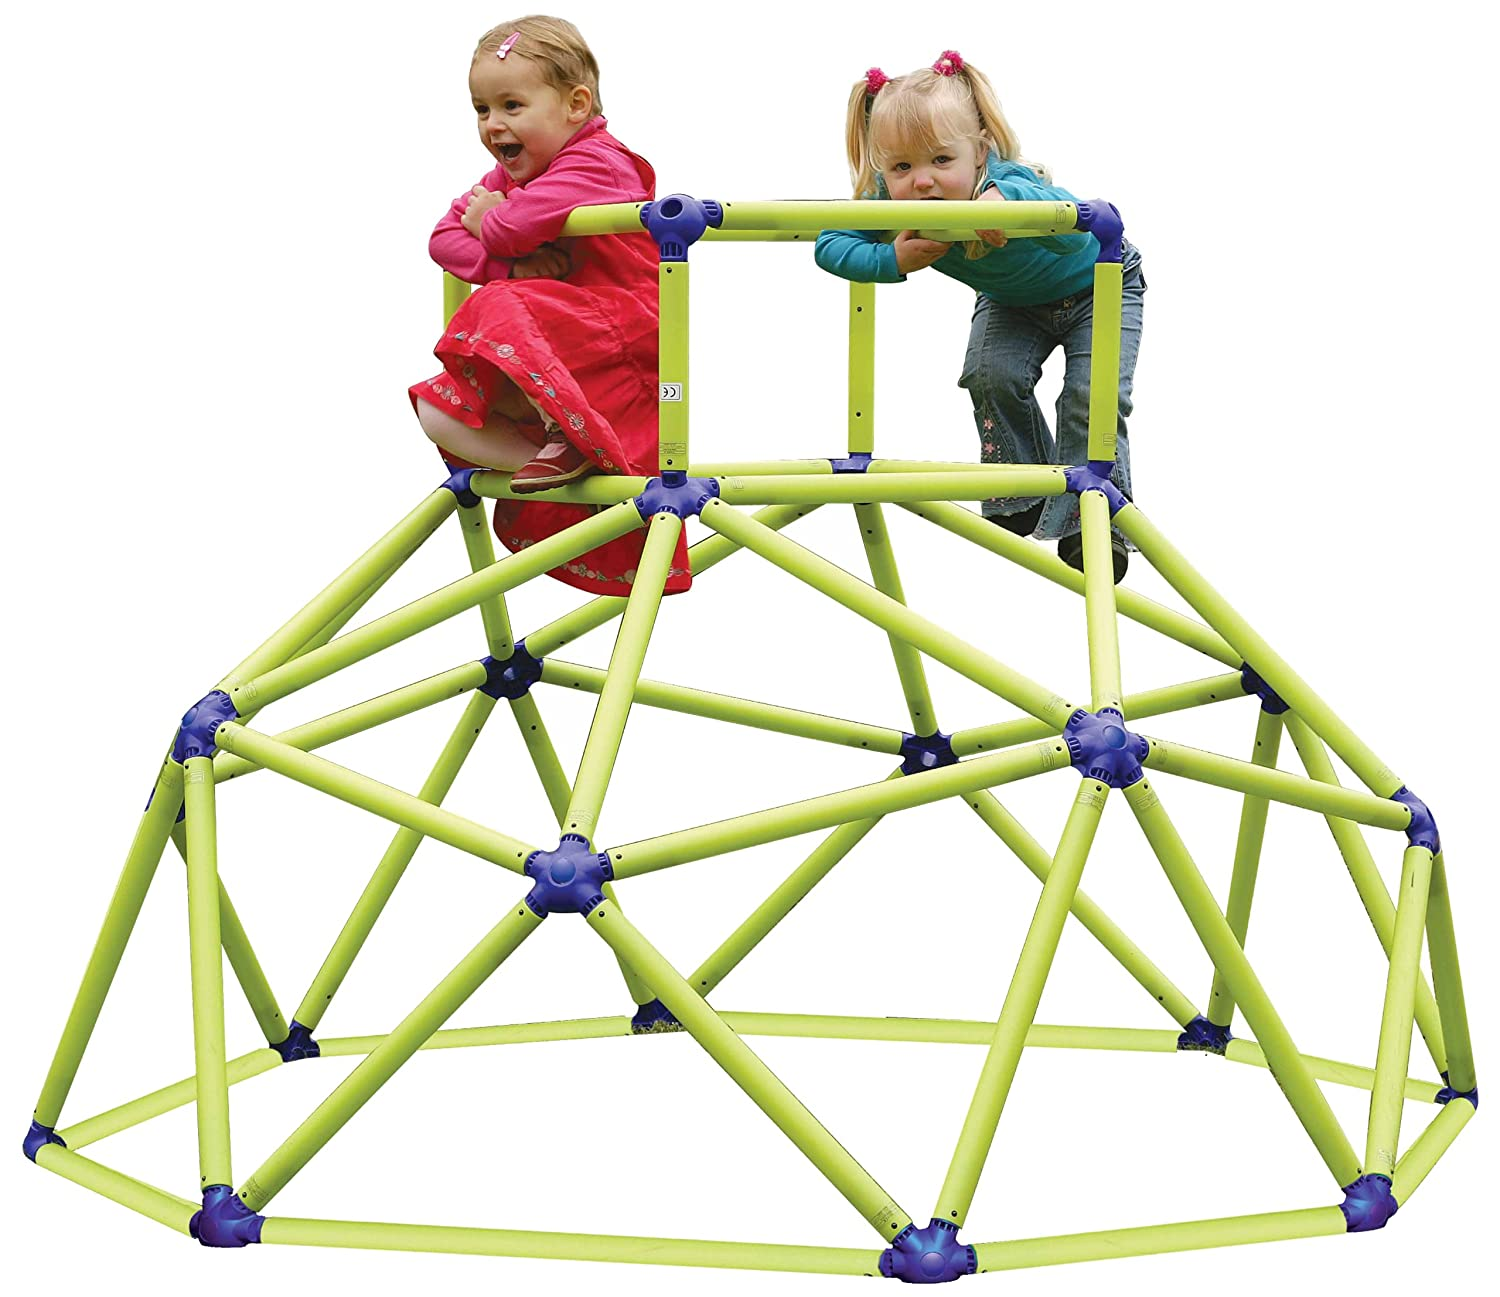 Best Climbers for Toddlers